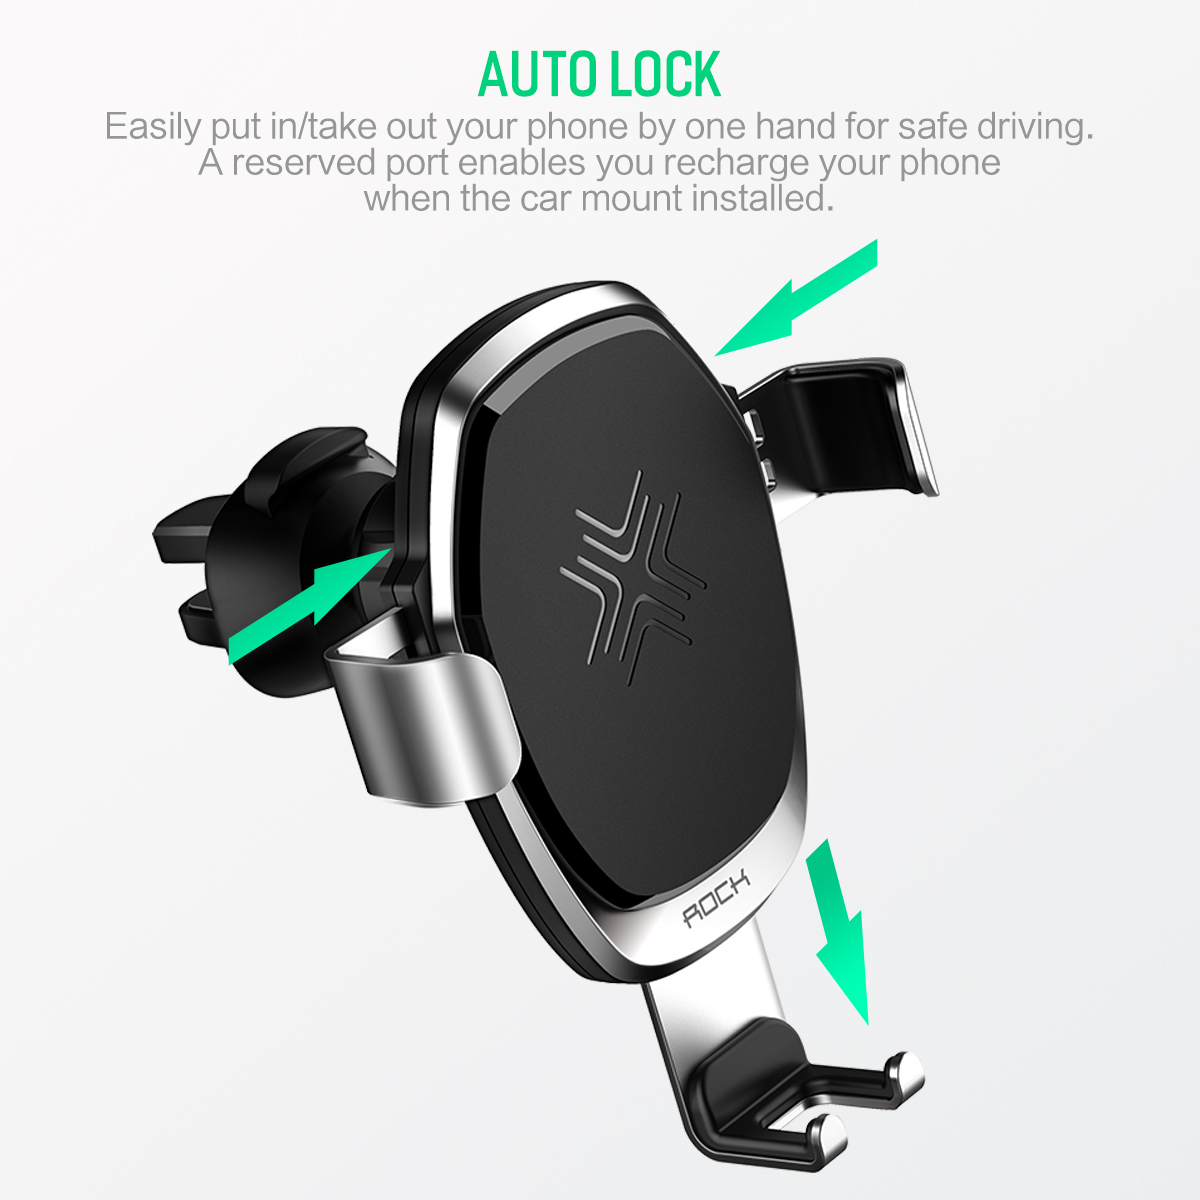 HTB1M1n2vRjTBKNjSZFwq6AG4XXal - 10W QI Wireless Car Charger Gravity Holder , ROCK for iPhone X 8 Plus Samsung Galaxy S8 S7 Note 8 Quick Charge Charging Stand